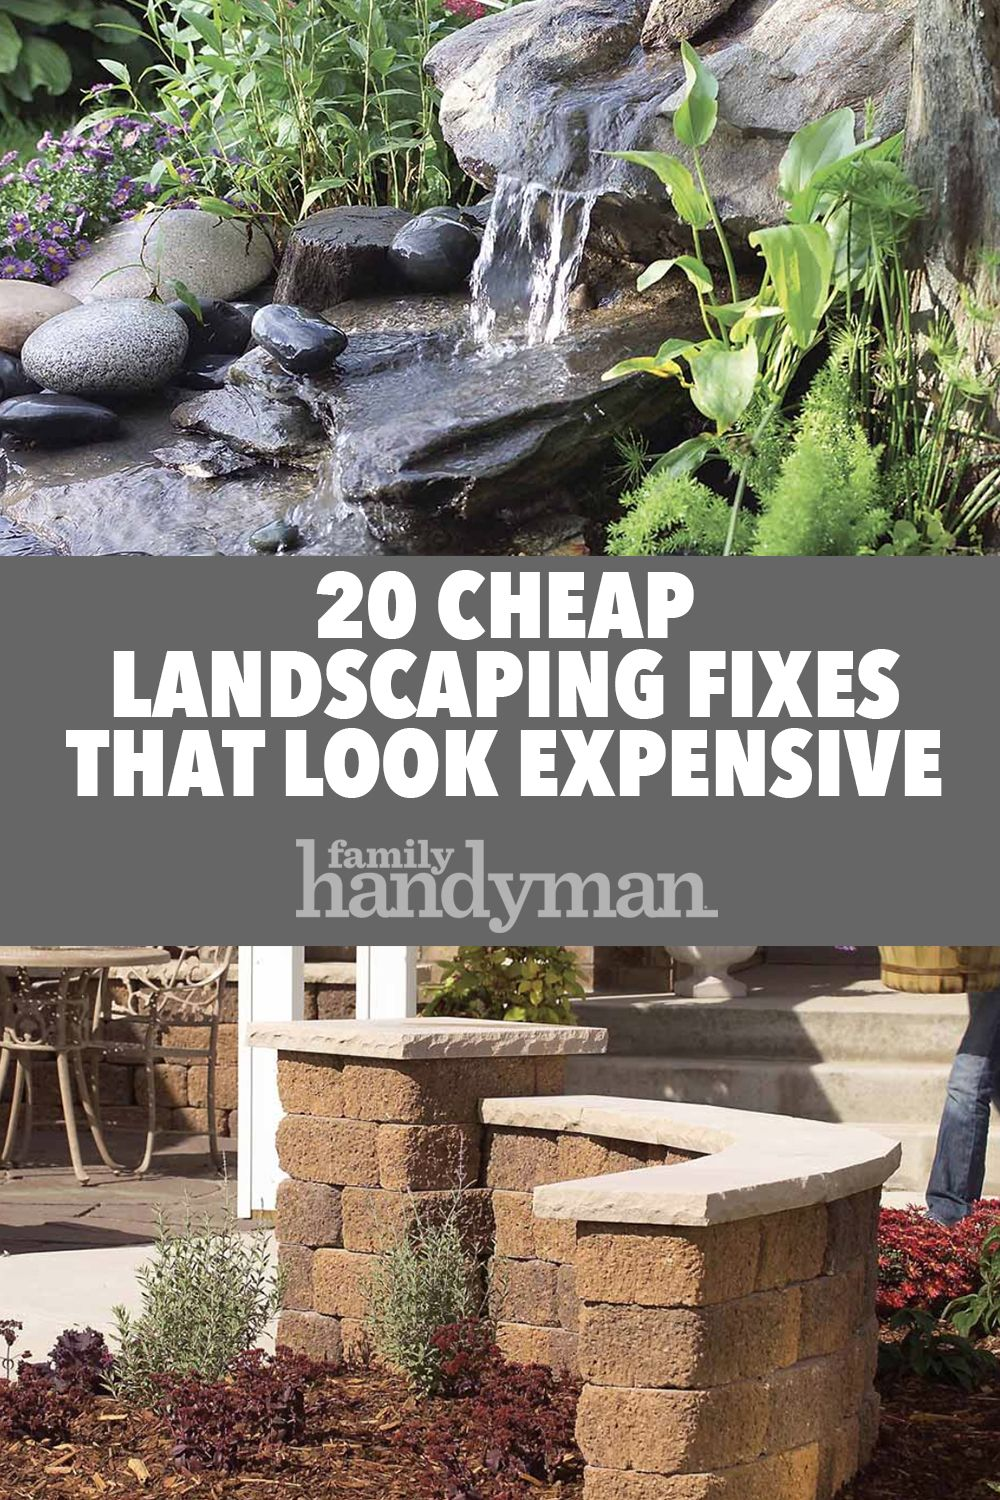 20 Cheap Landscaping Fixes That Look Expensive Home Landscaping Landscaping Tips Backyard Landscaping